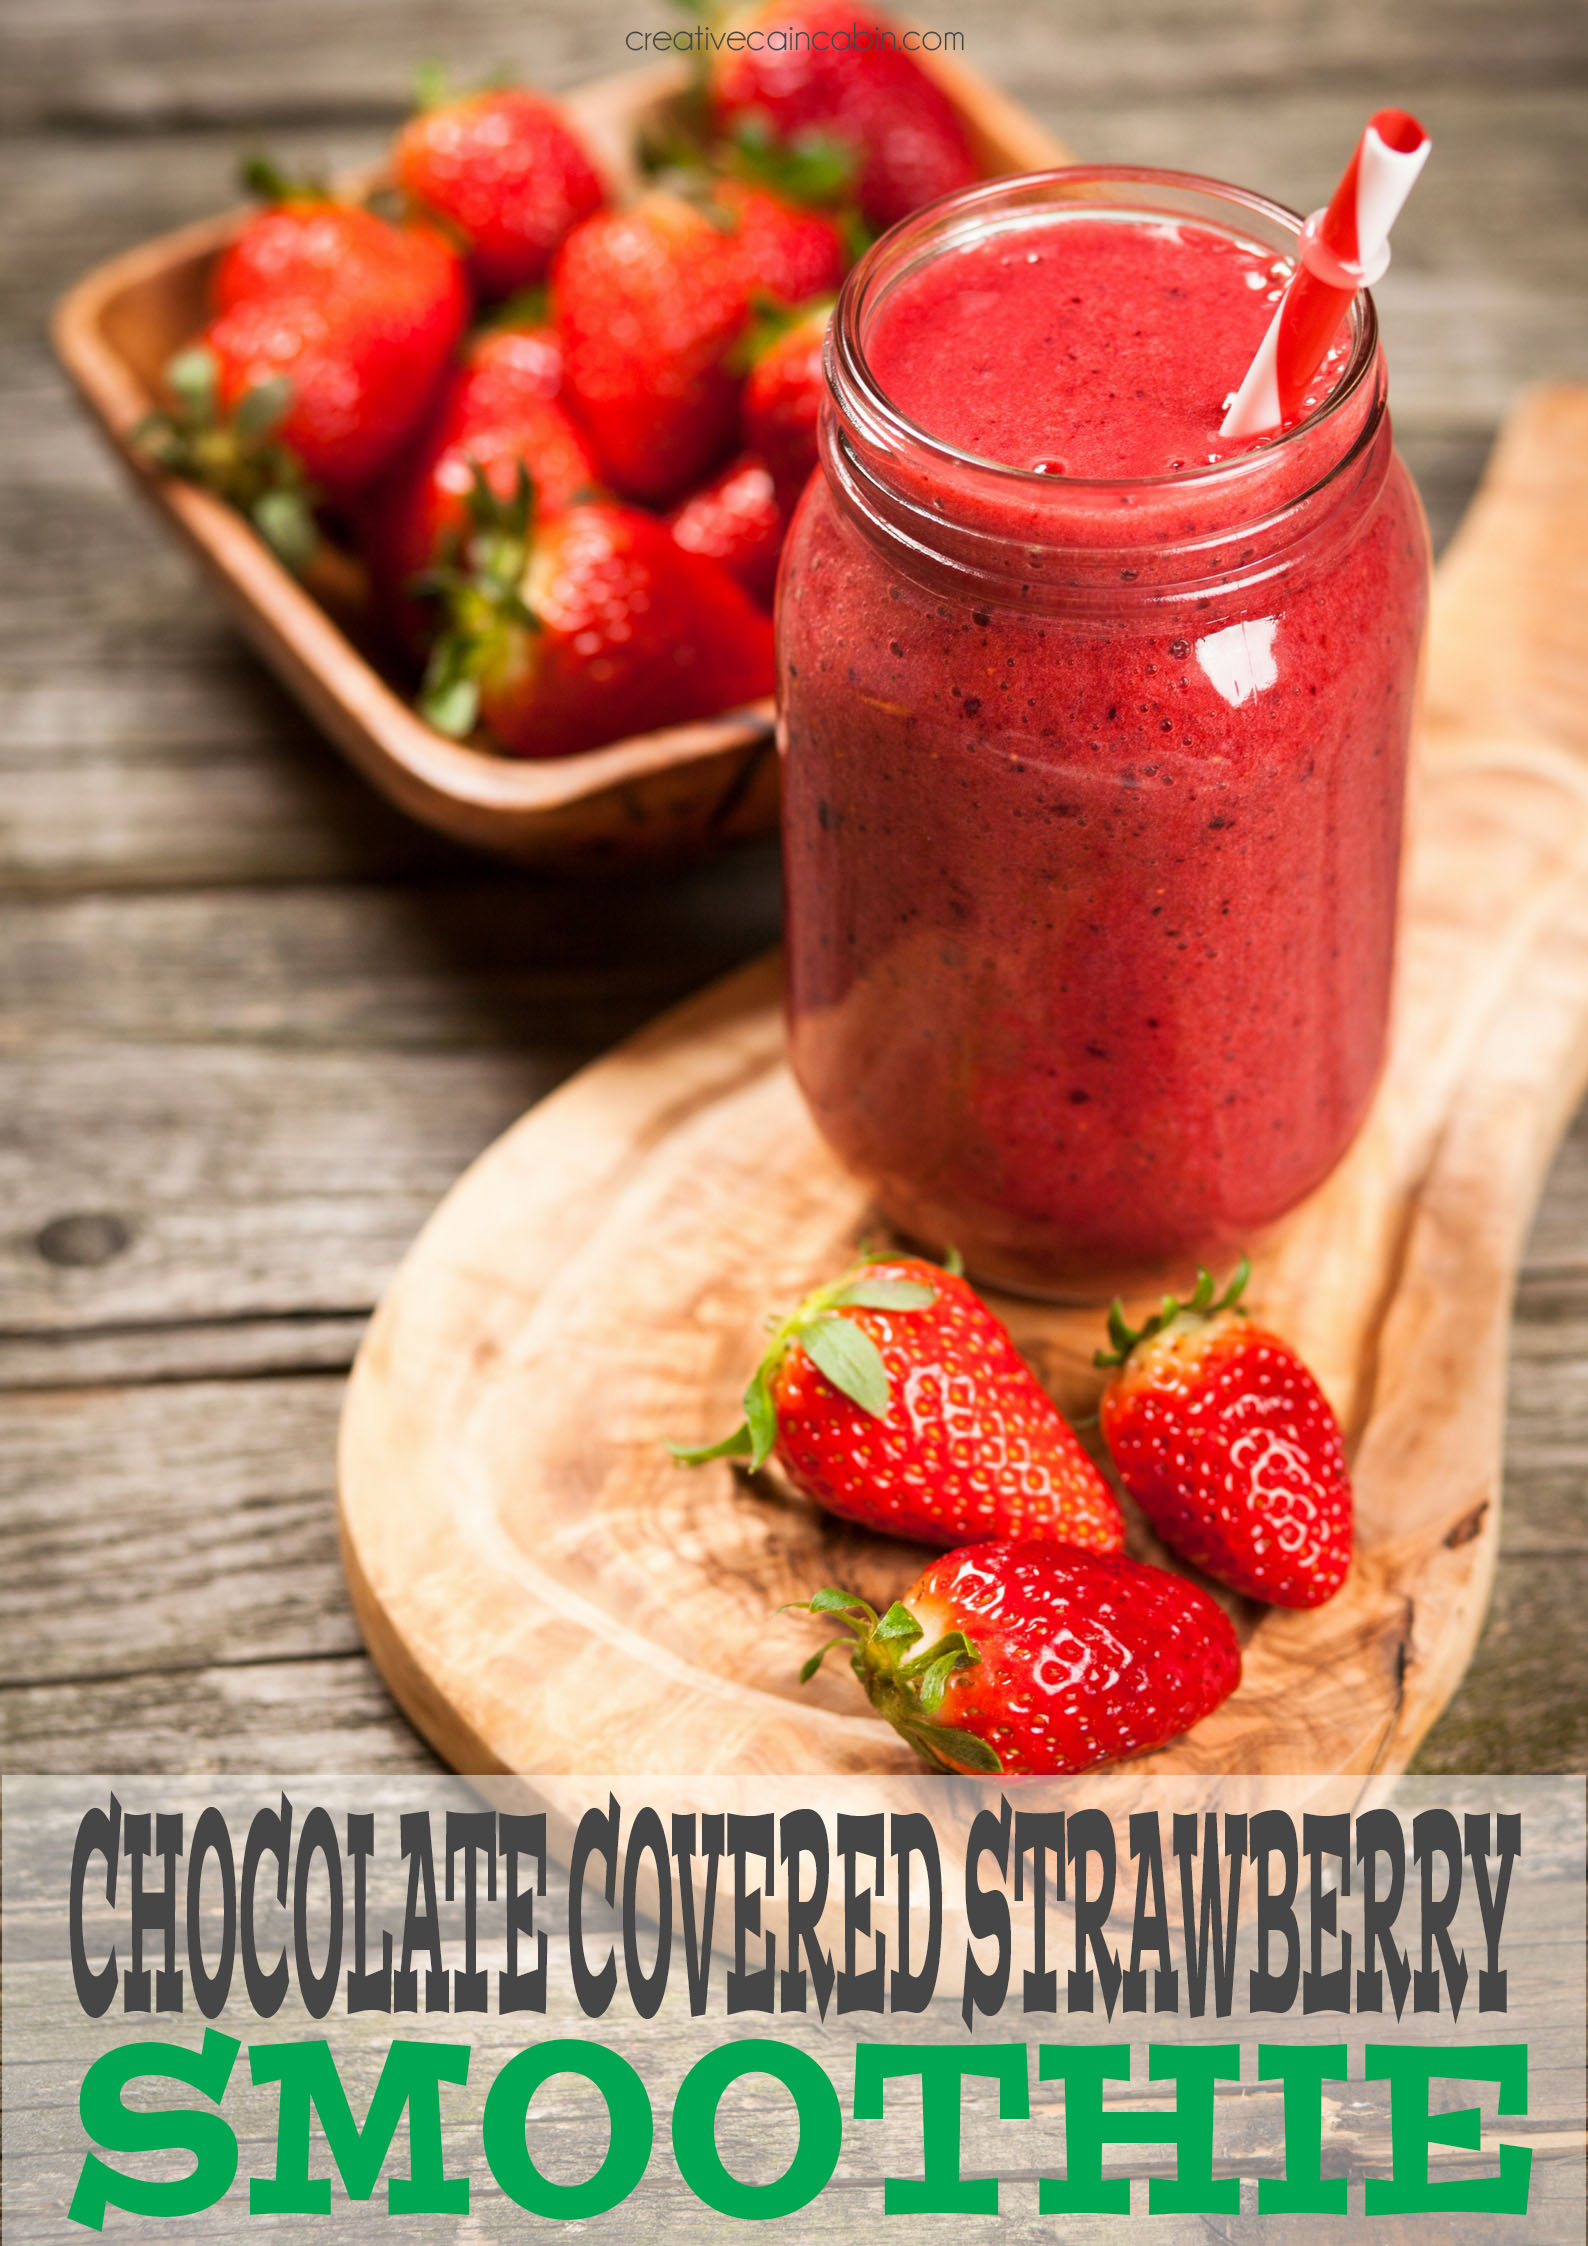 Chocolate Covered Strawberry Smoothie Recipe, Great For Kids, Easy To Make, Packed Full of Fruit and Veggies For a Simple On The Go Meal